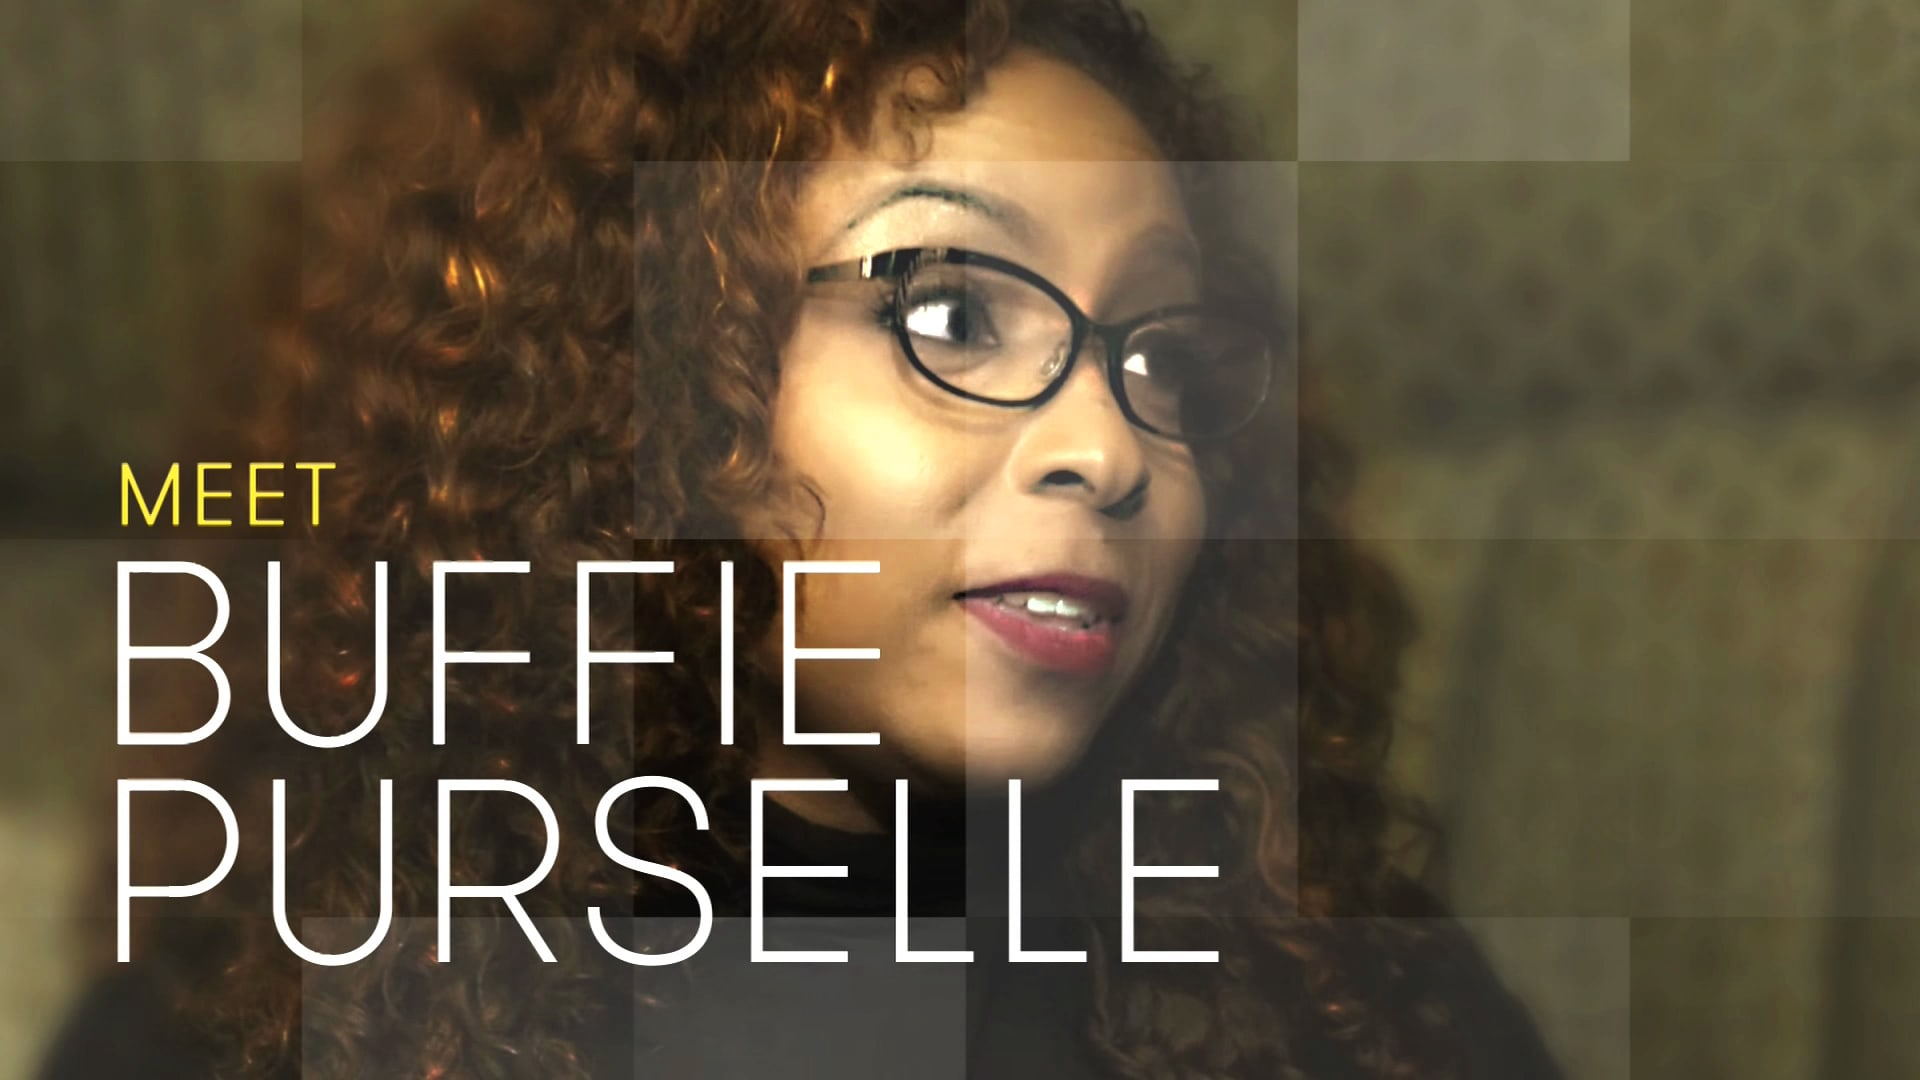 The Partner contestant Buffie Purselle